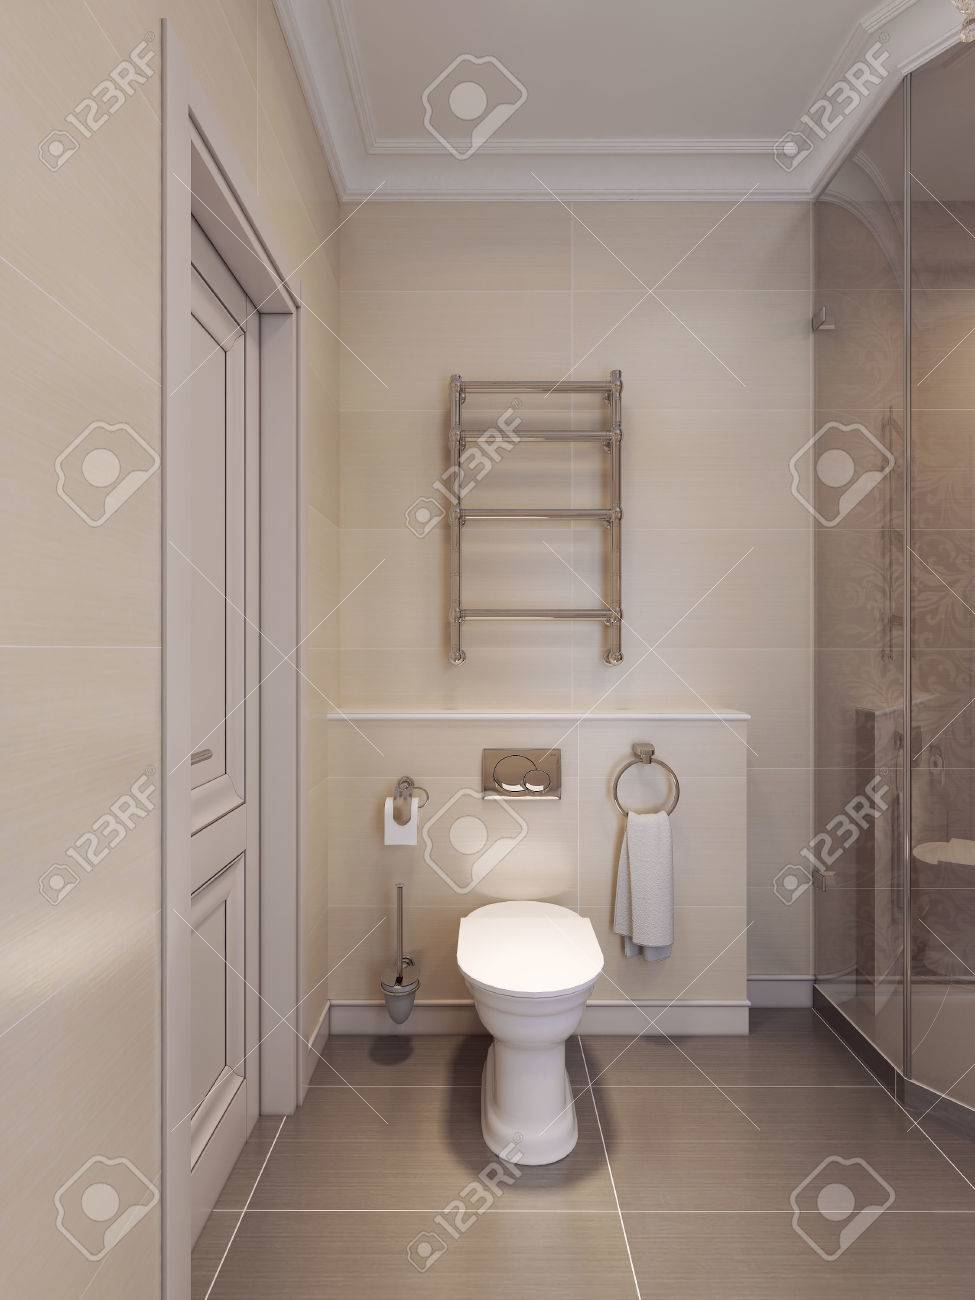 wc in the art deco style brown and beige tiles on the walls